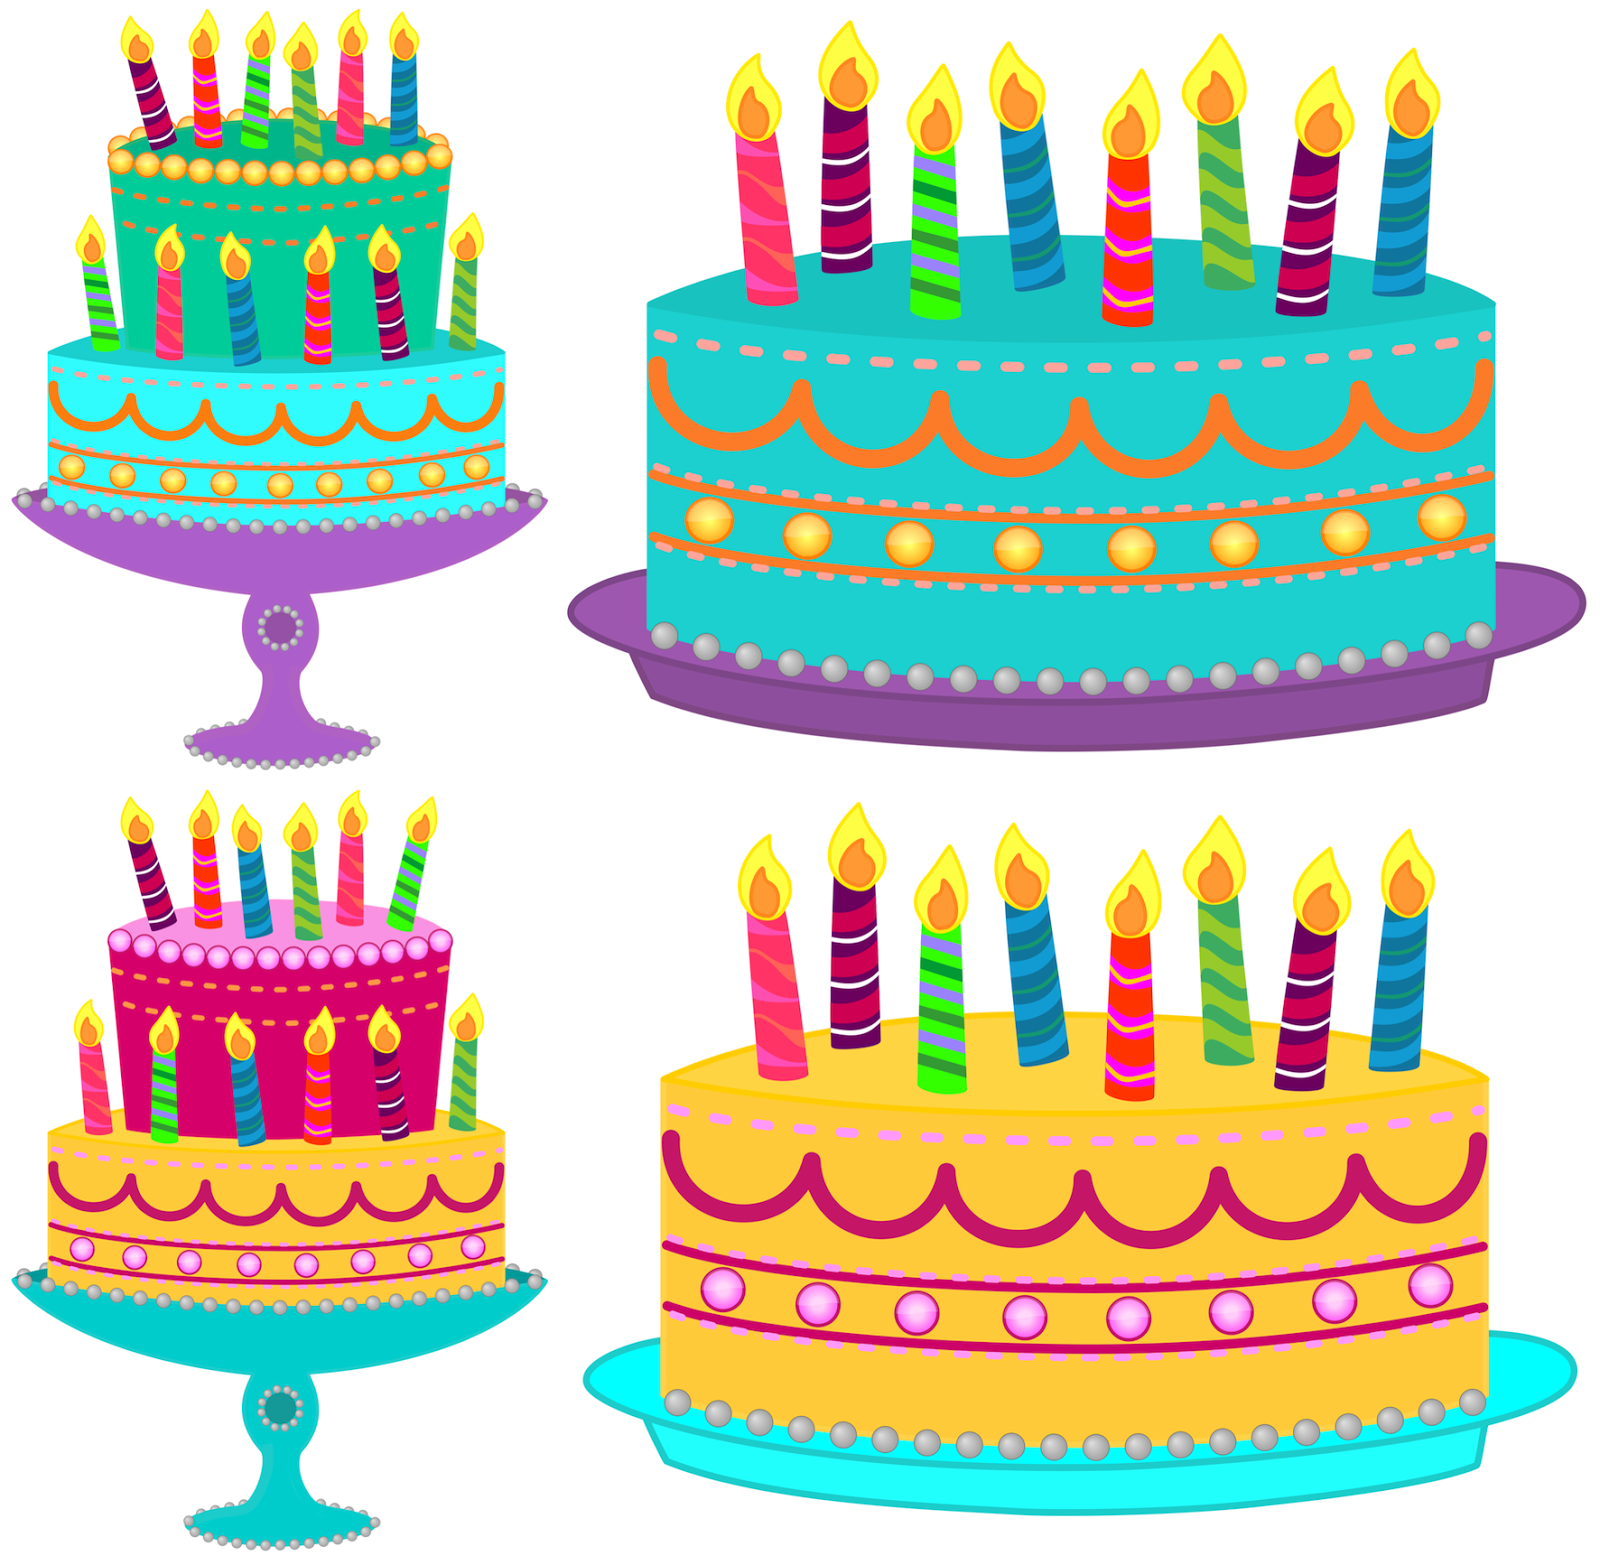 July Birthday Cake Clipart Blue cake with no candles.